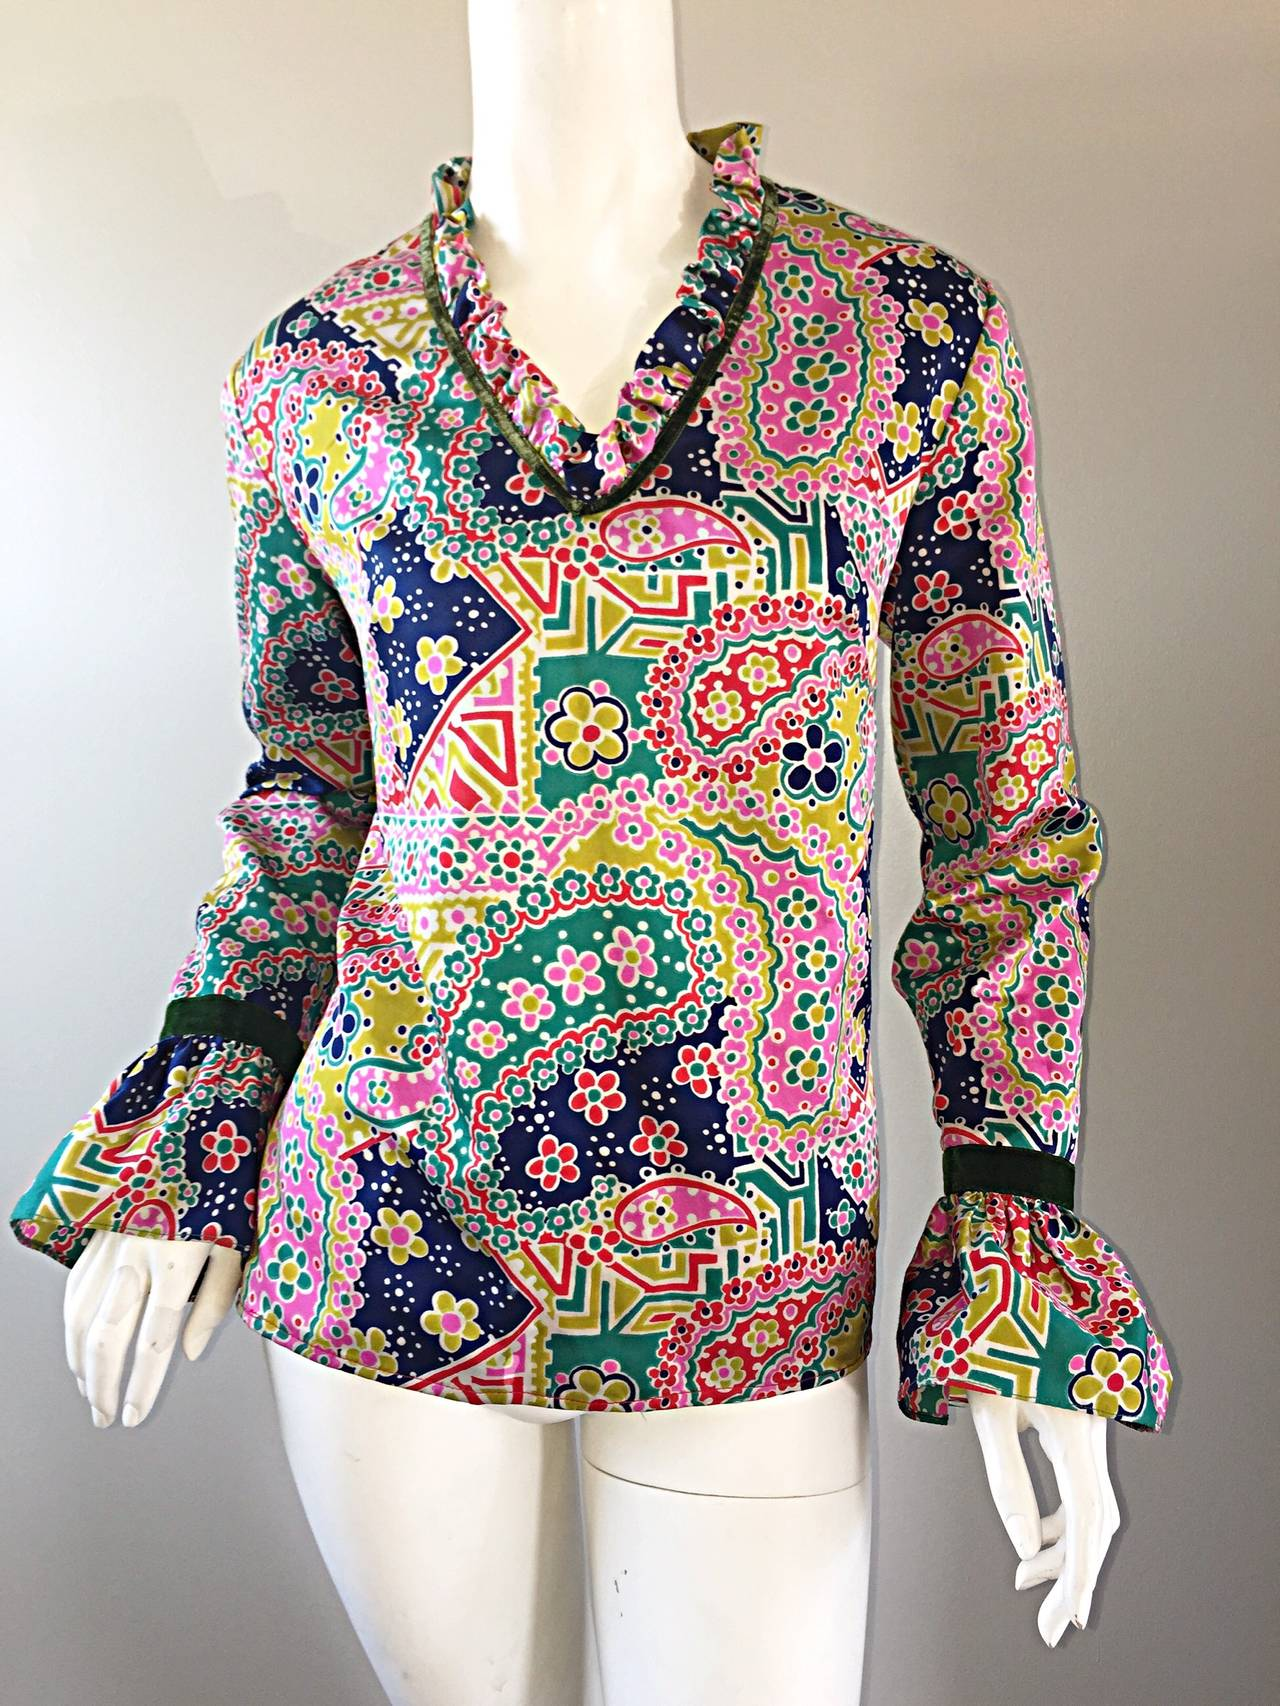 Psychedelic 1970s 70s Paisley + Floral Multi - Color Boho Top / Blouse / Tunic For Sale 2